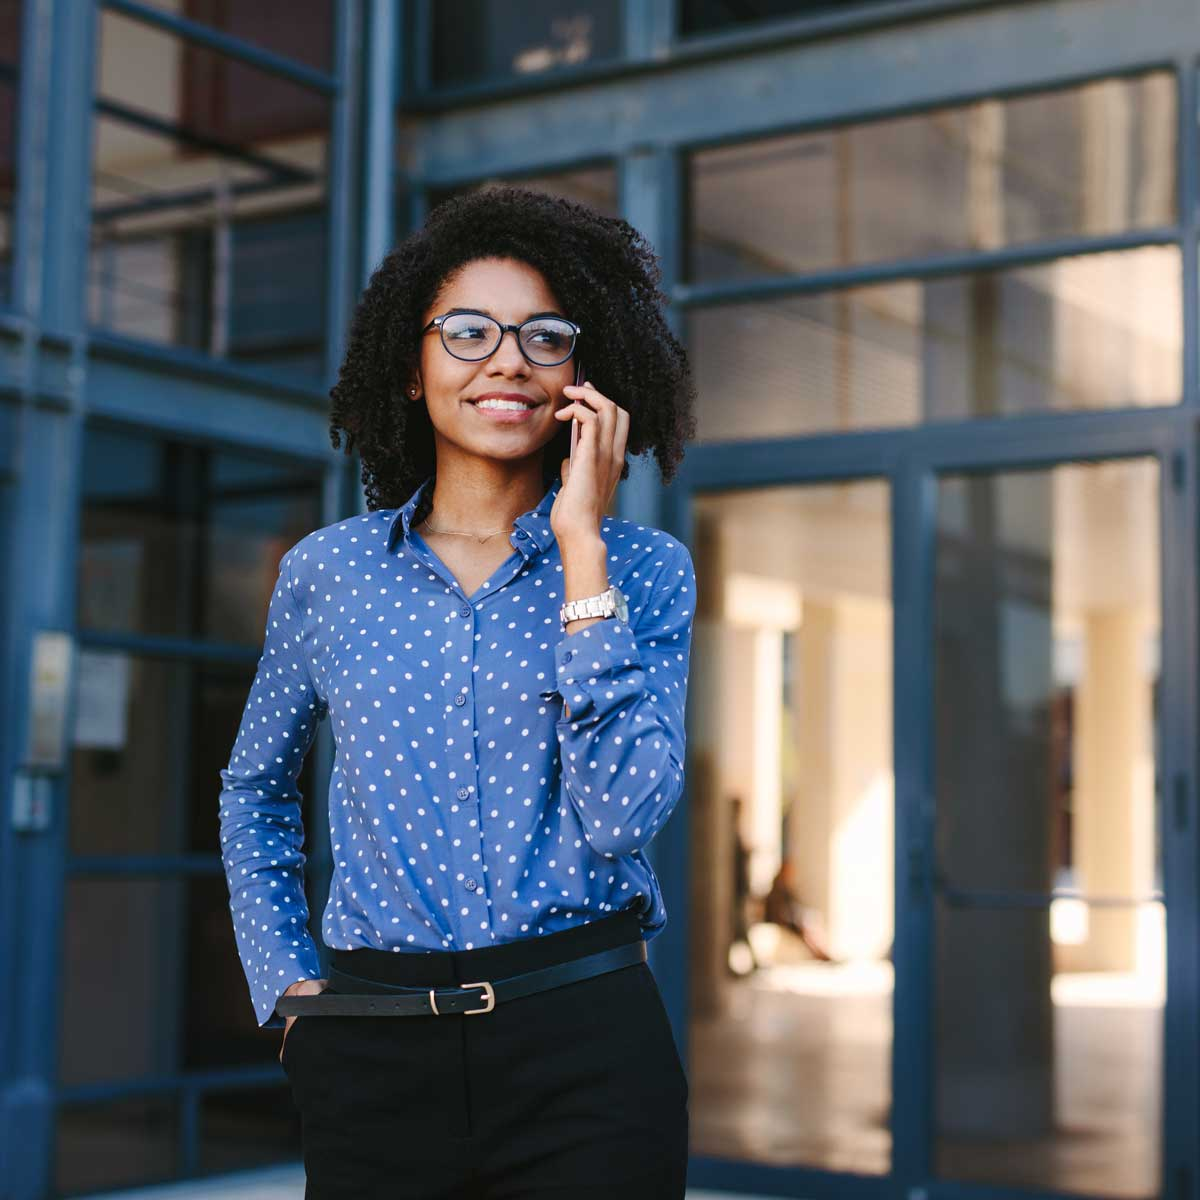 Business-professional-making-a-phone-call-outside-office-building